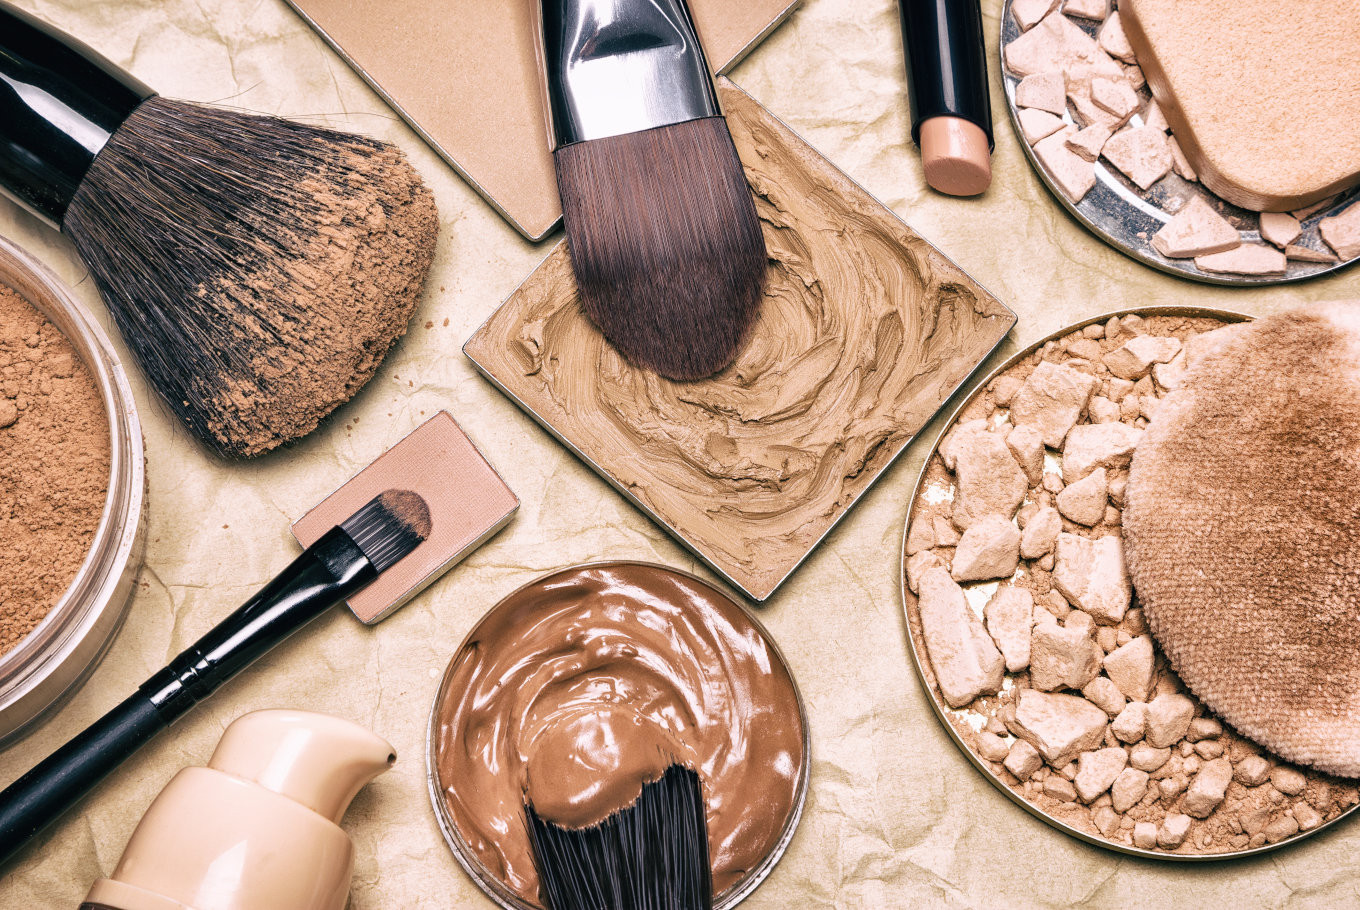 JD.id launches virtual try-on for beauty products